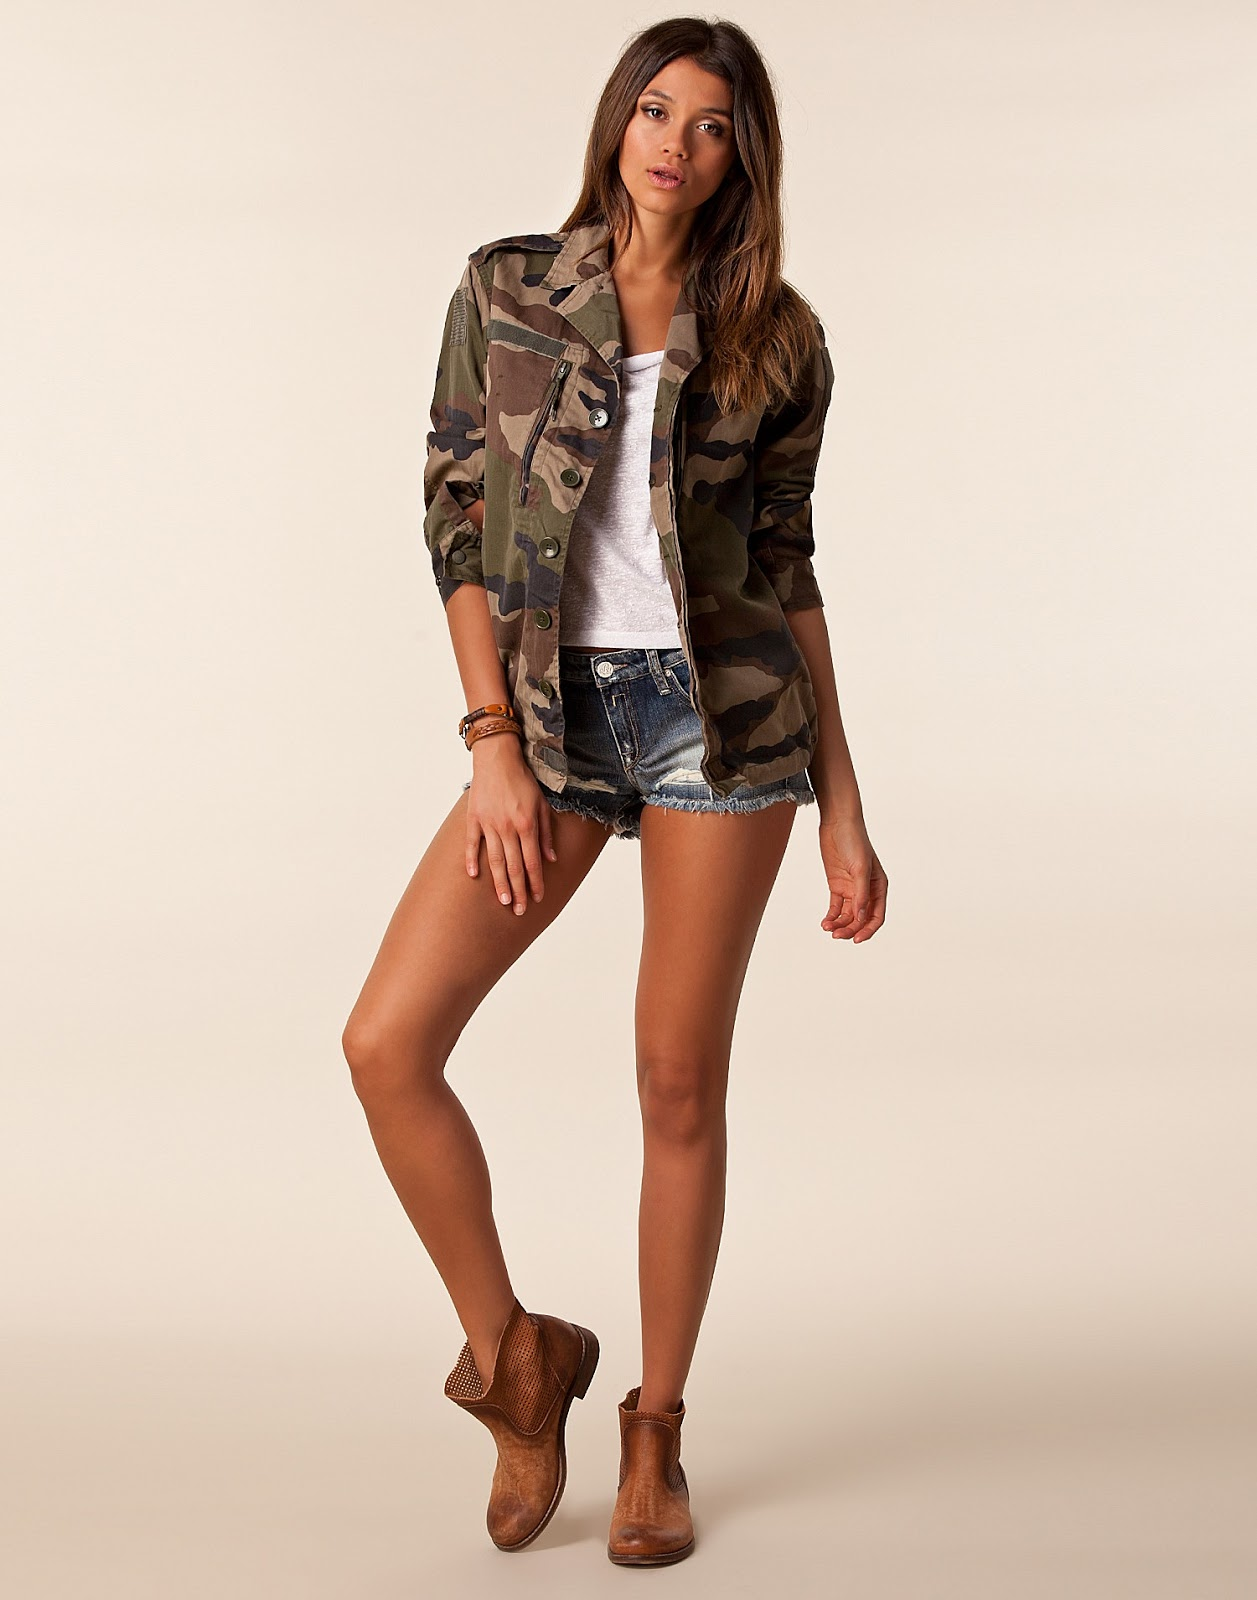 tendance mode army veste camouflage femme arm e francaise mode vintage. Black Bedroom Furniture Sets. Home Design Ideas